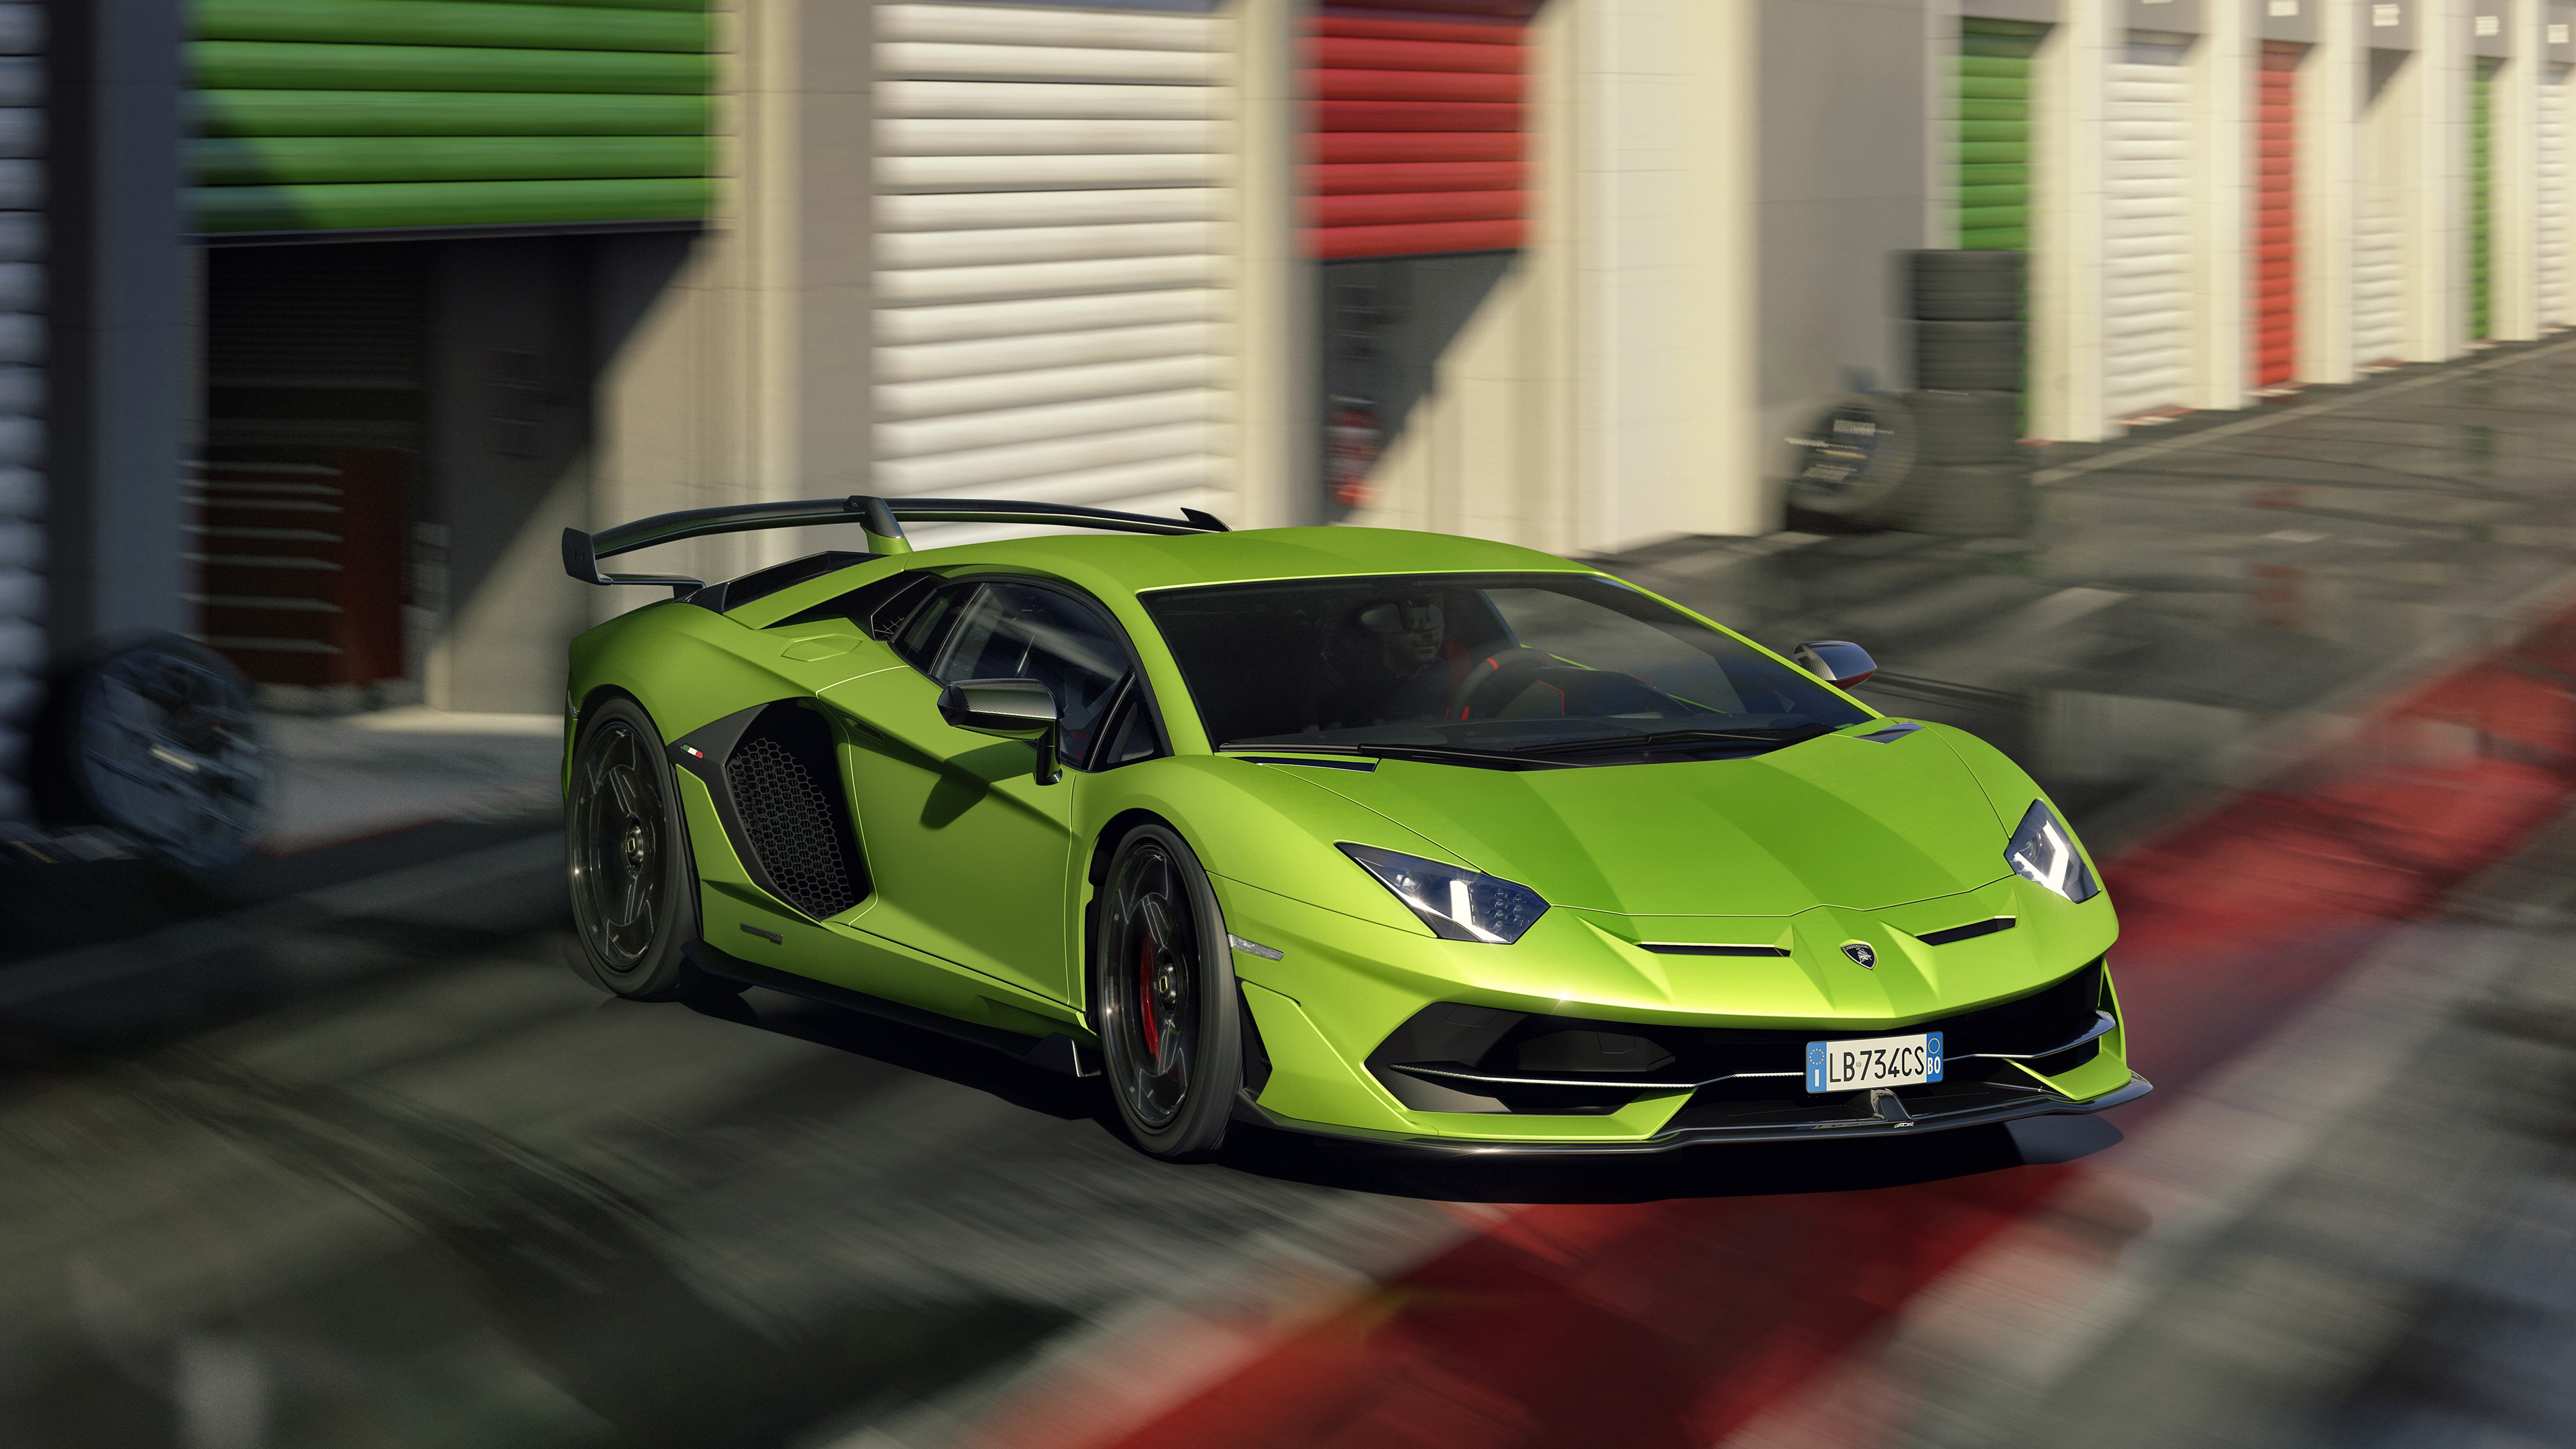 2019 Lamborghini Aventador Svj 4k 5 Wallpaper Hd Car Wallpapers